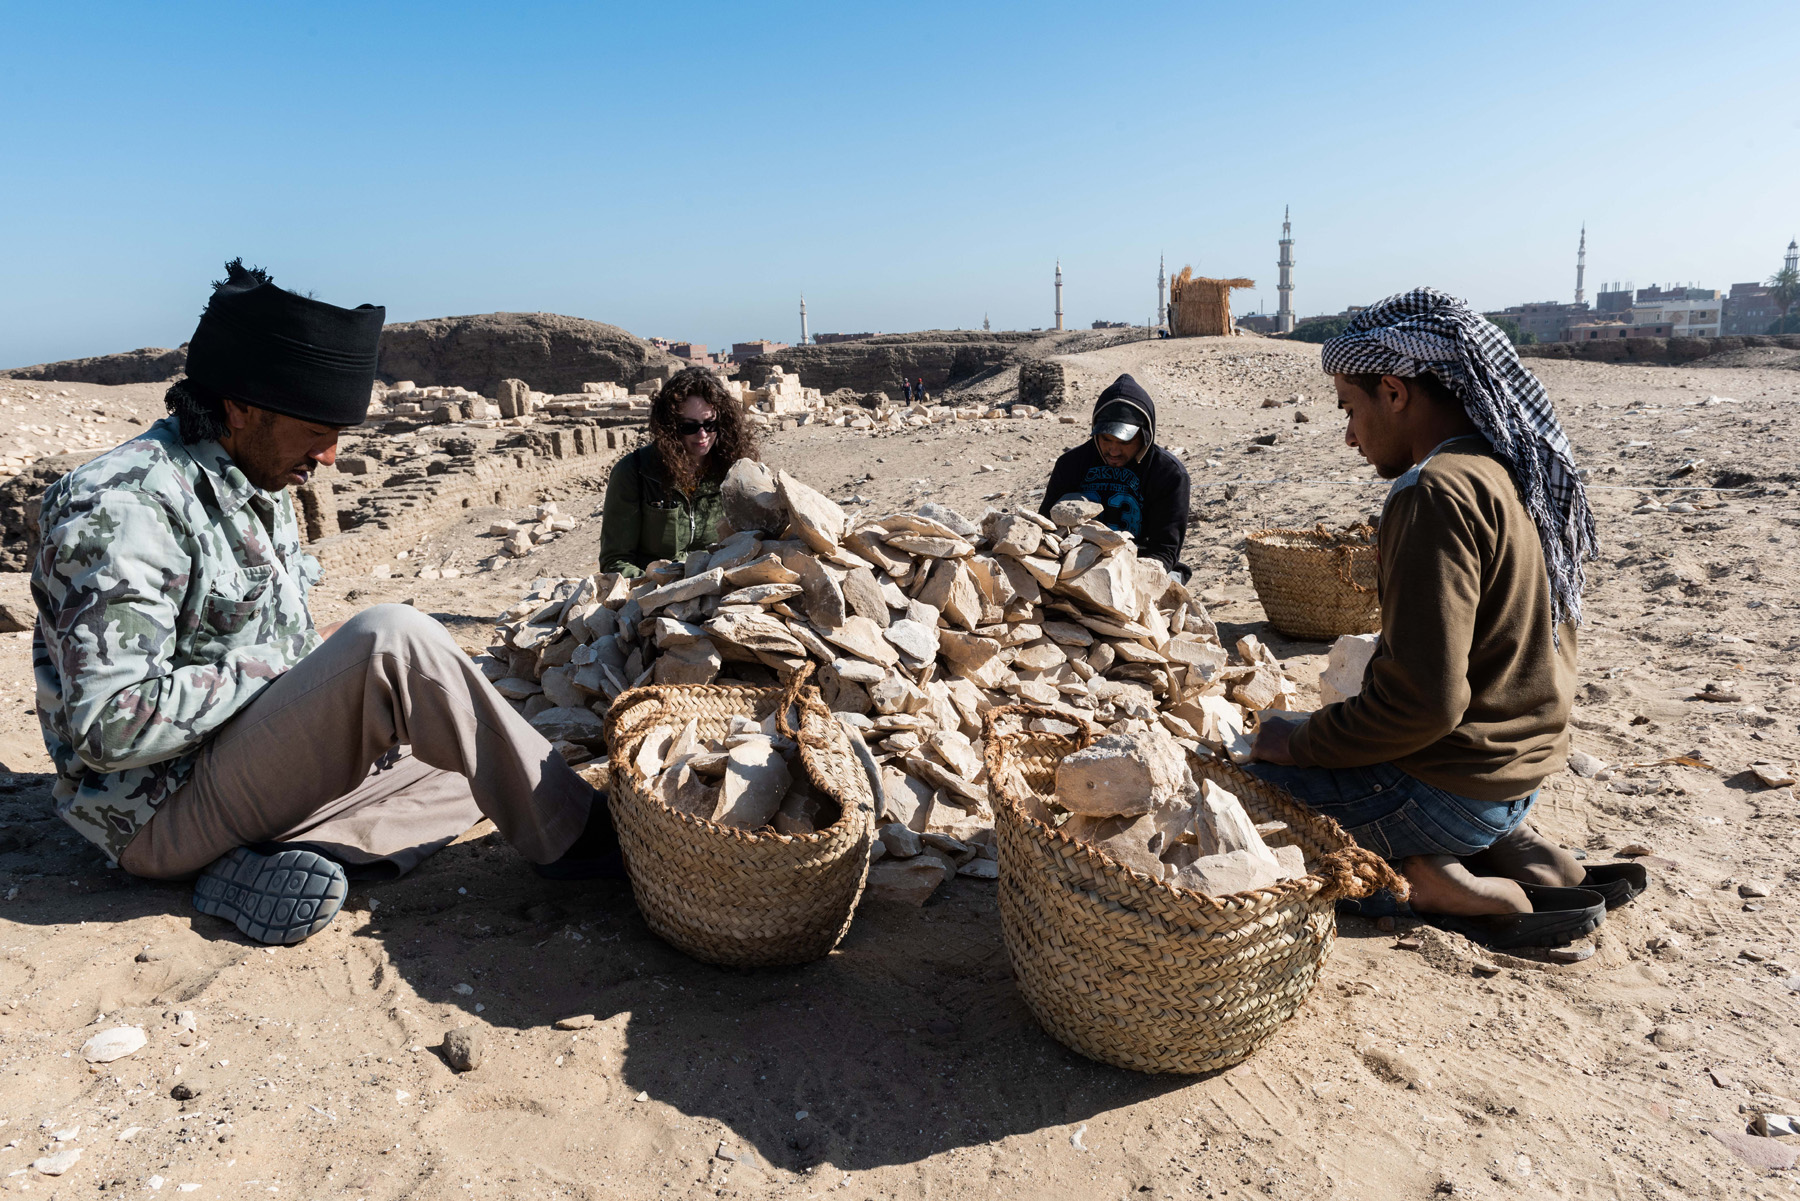 Fig. 17. Sorting limestone fragments collected on the surface of the temple area. Photo: Ayman Damarany © North Abydos Expedition 2019